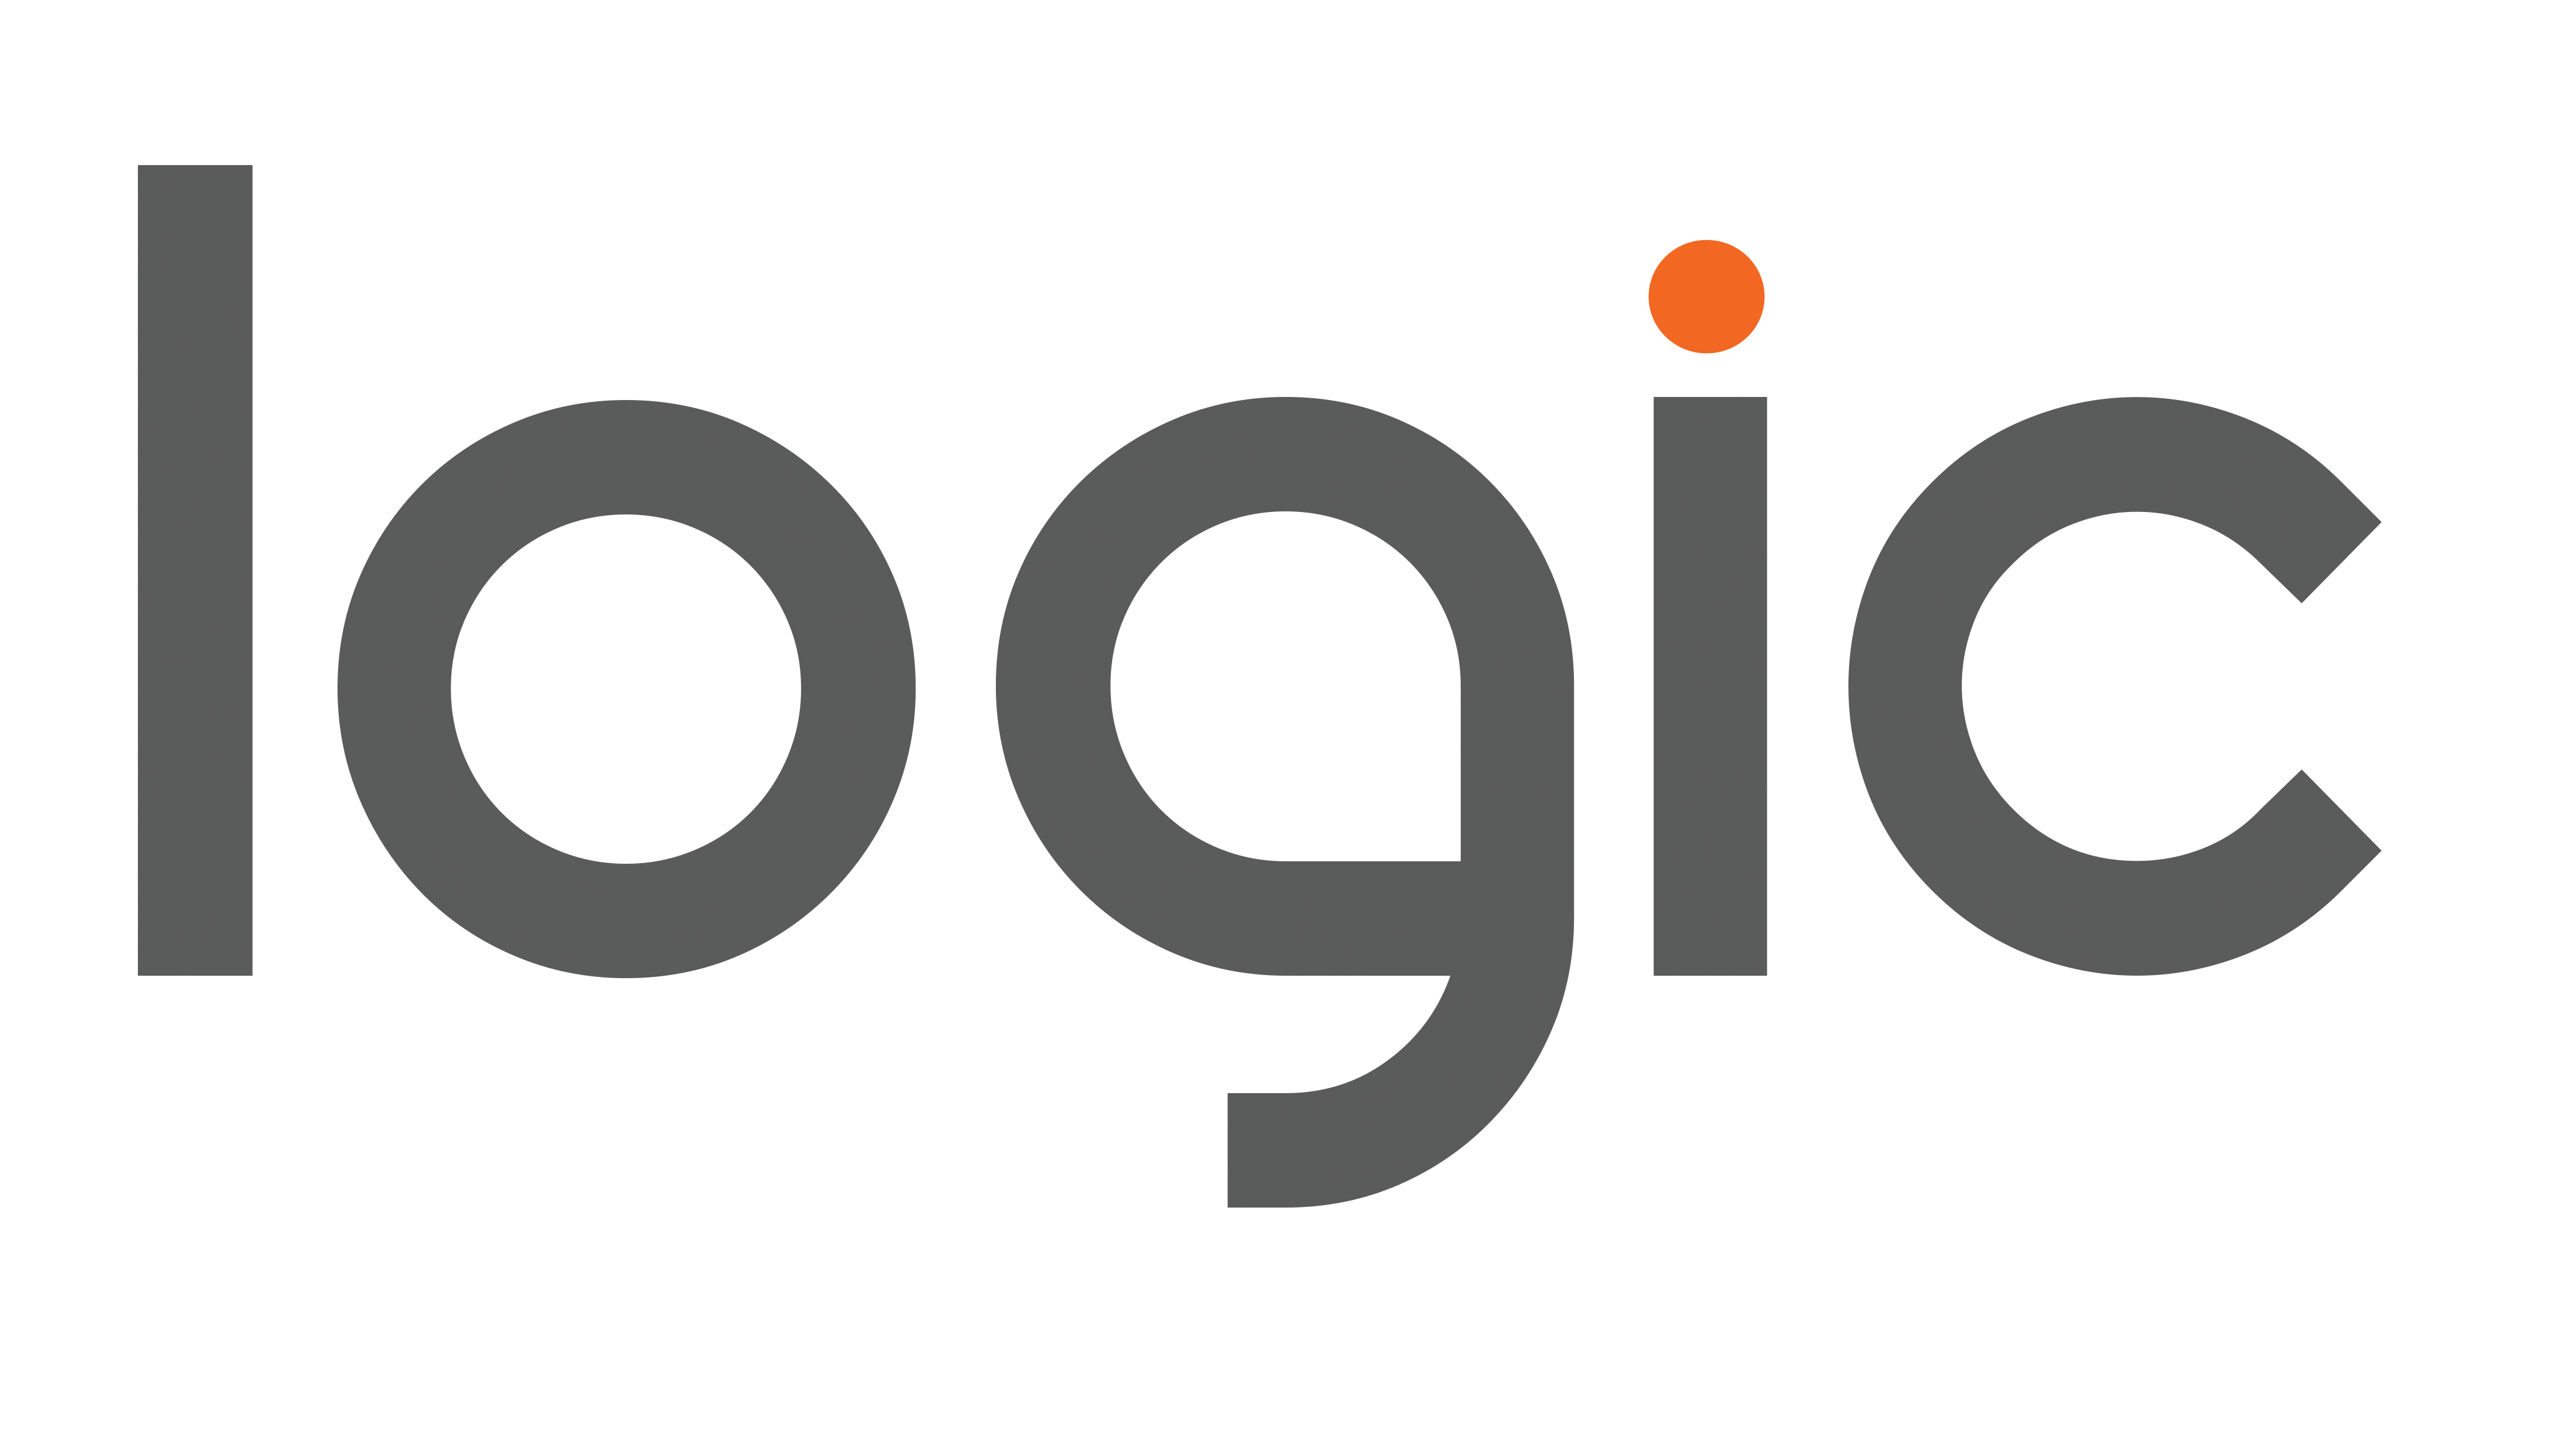 Logic logo png. Technology consulting group about